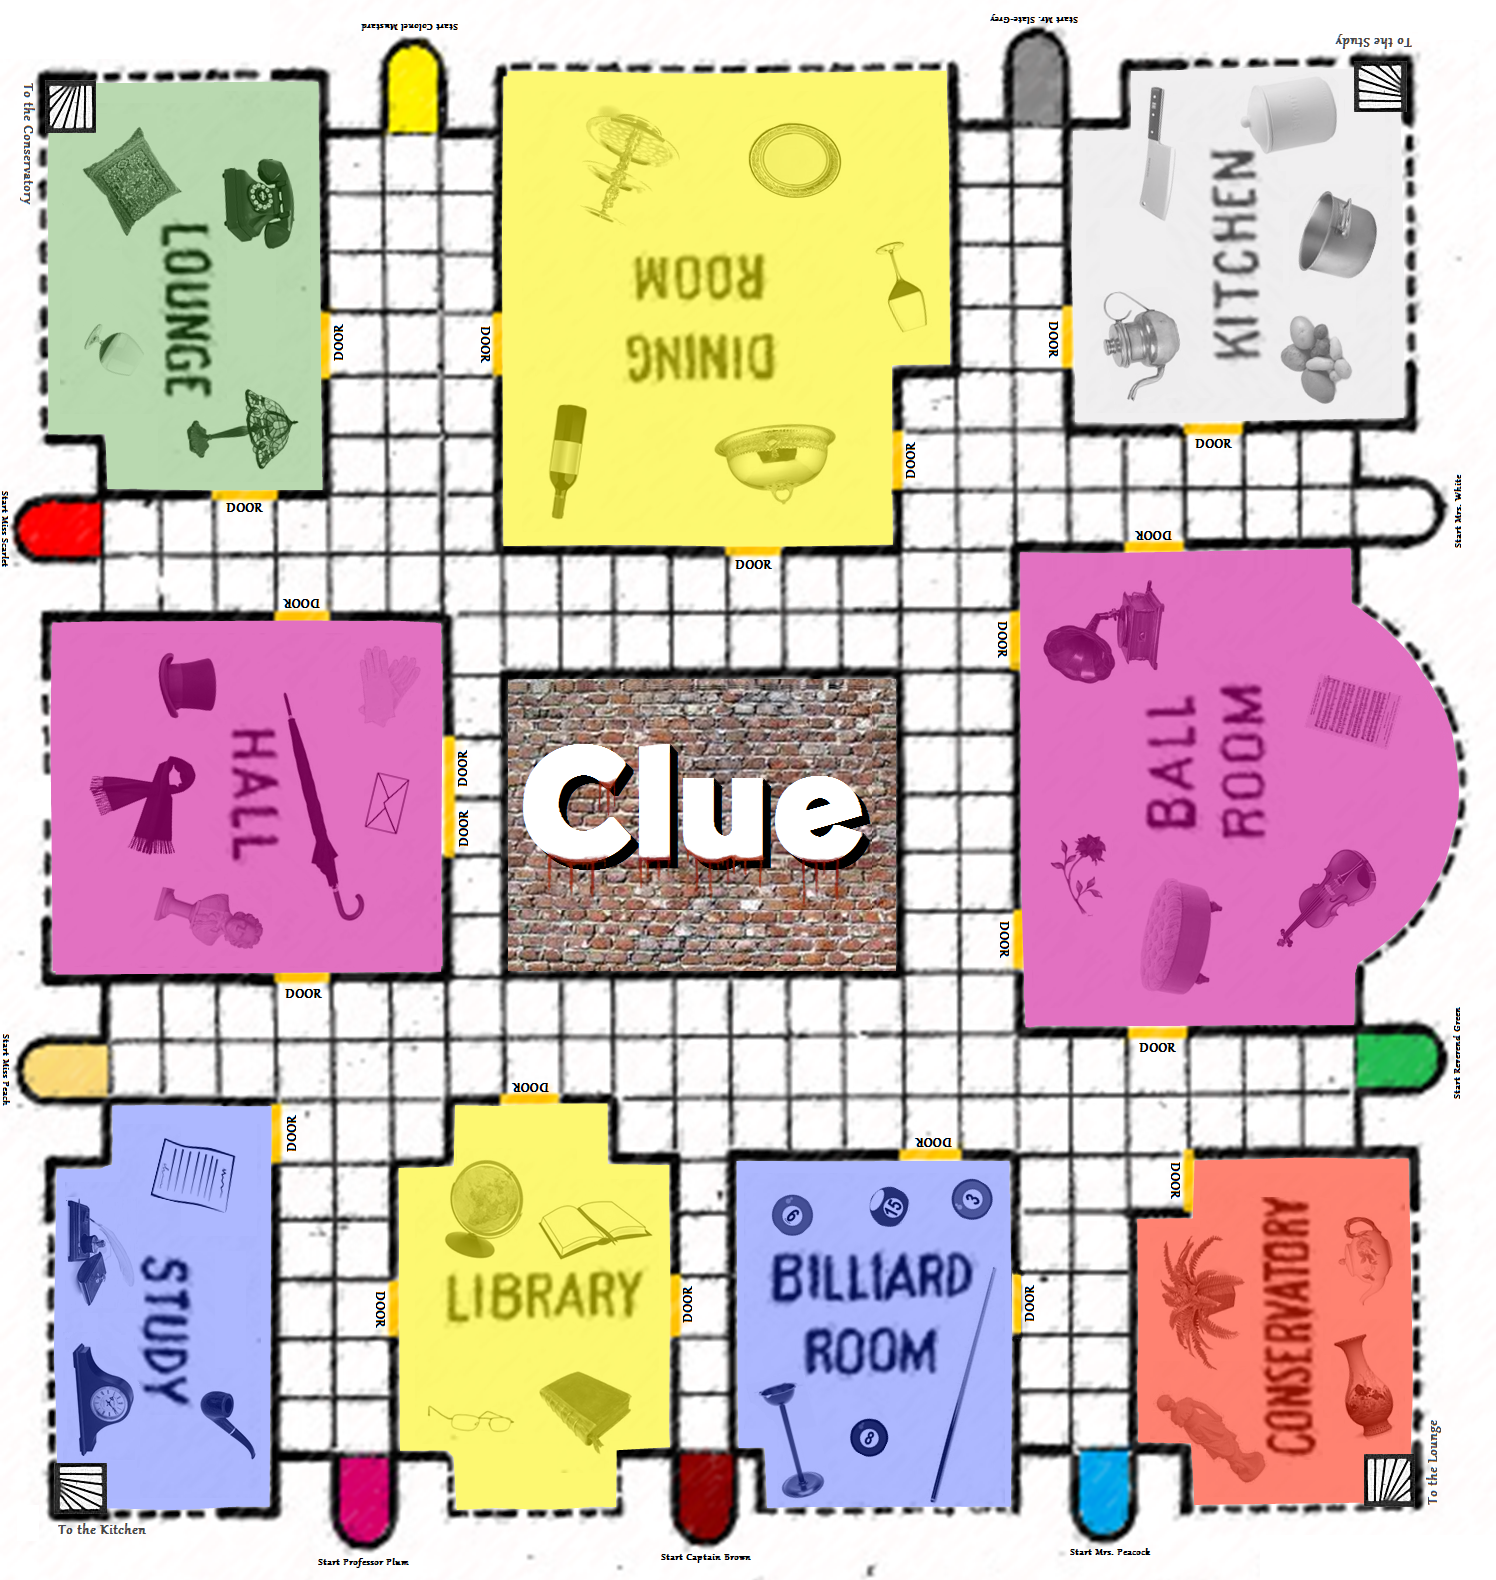 image regarding Game Pieces Printable titled Clue Video game Board Printable Birthday - spy detective secret